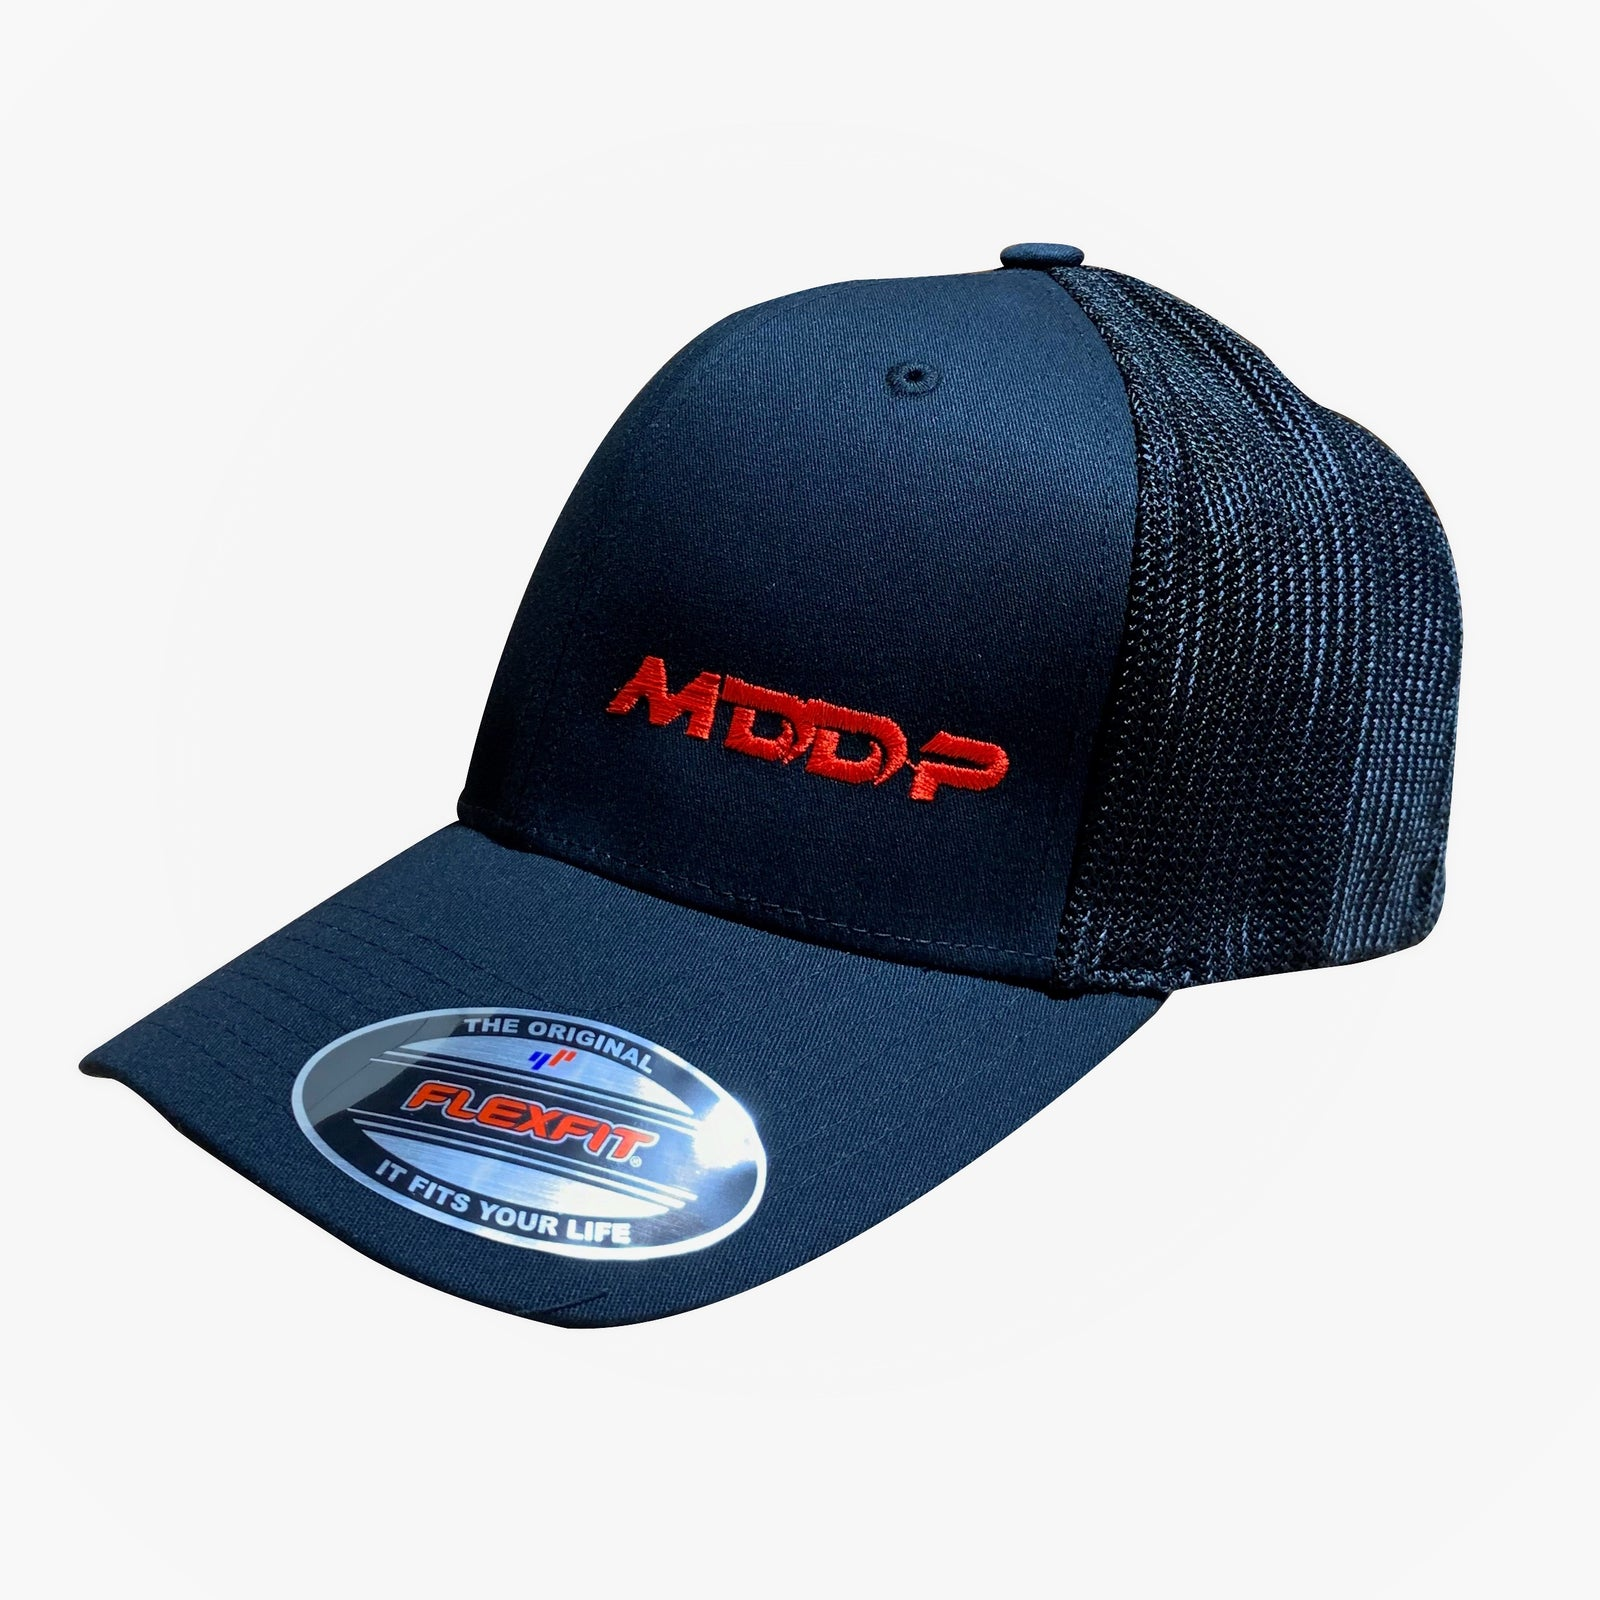 MDDP Stitched Hat